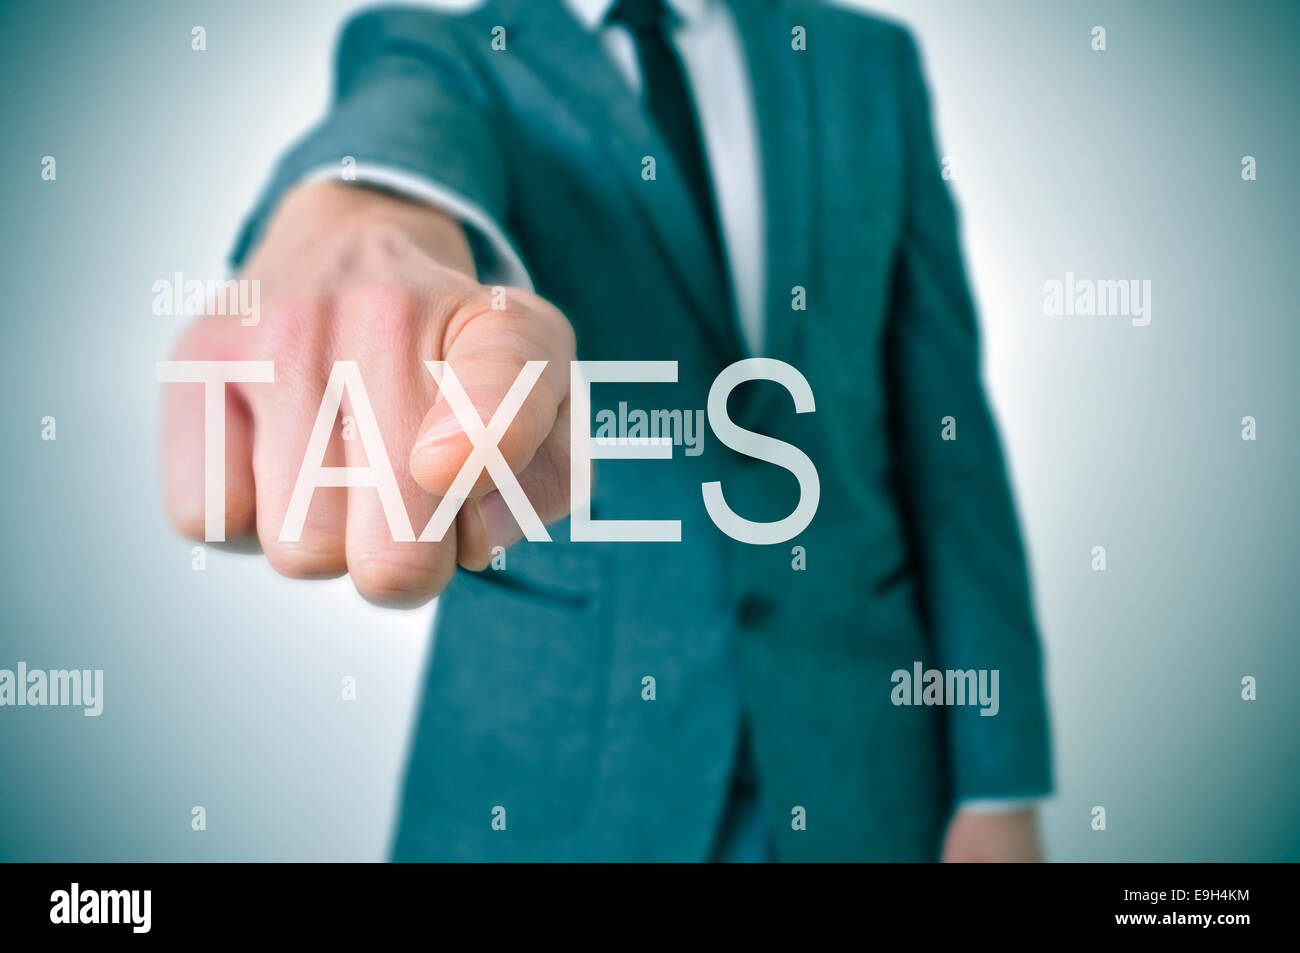 man wearing a suit pointing the finger to the word taxes written in the foreground - Stock Image